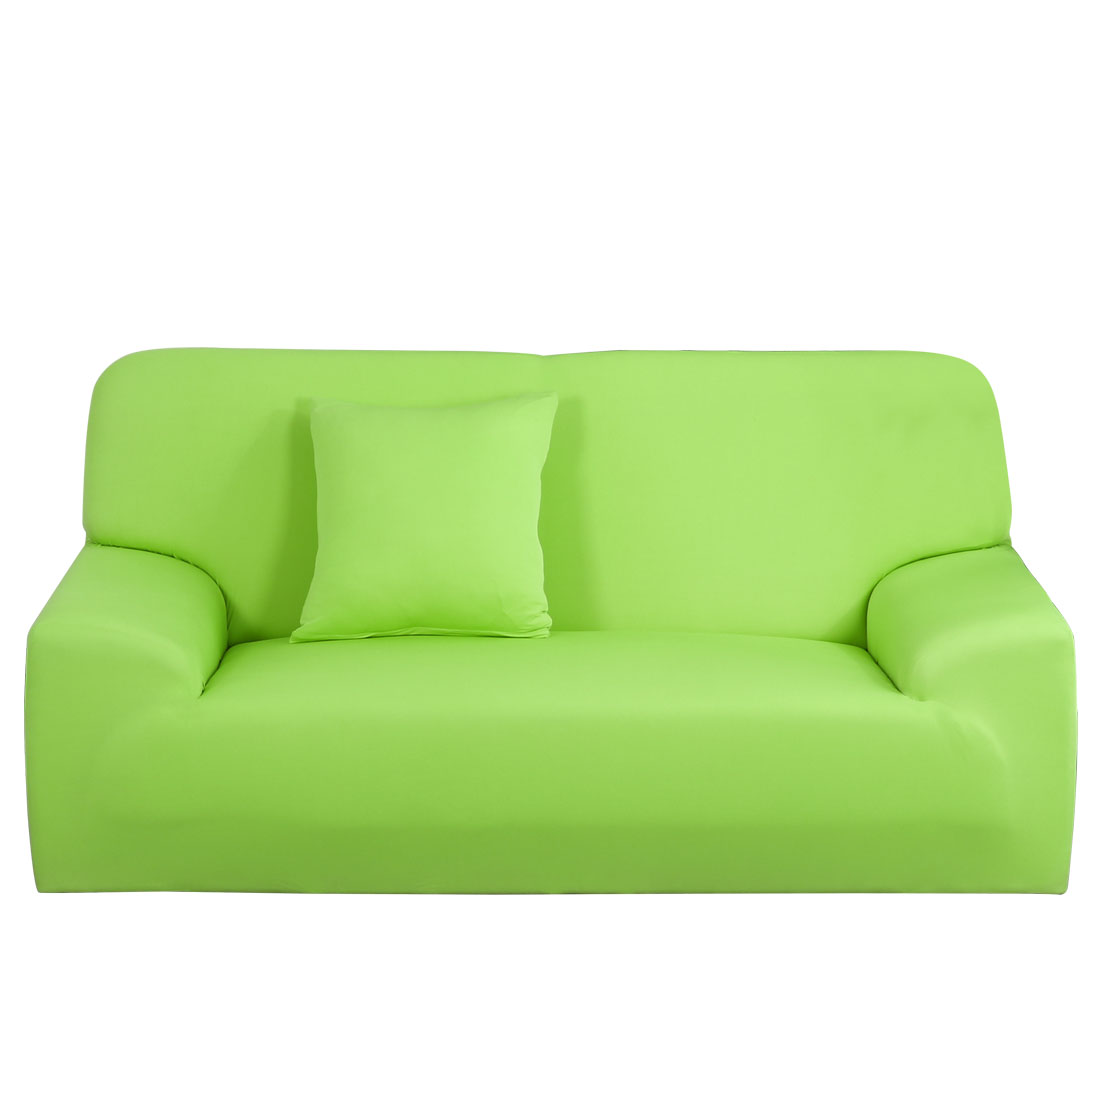 Stretch Sofa Slipcovers Sofa Covers 2 Seater Protectors Couch 55-74 Inches Green